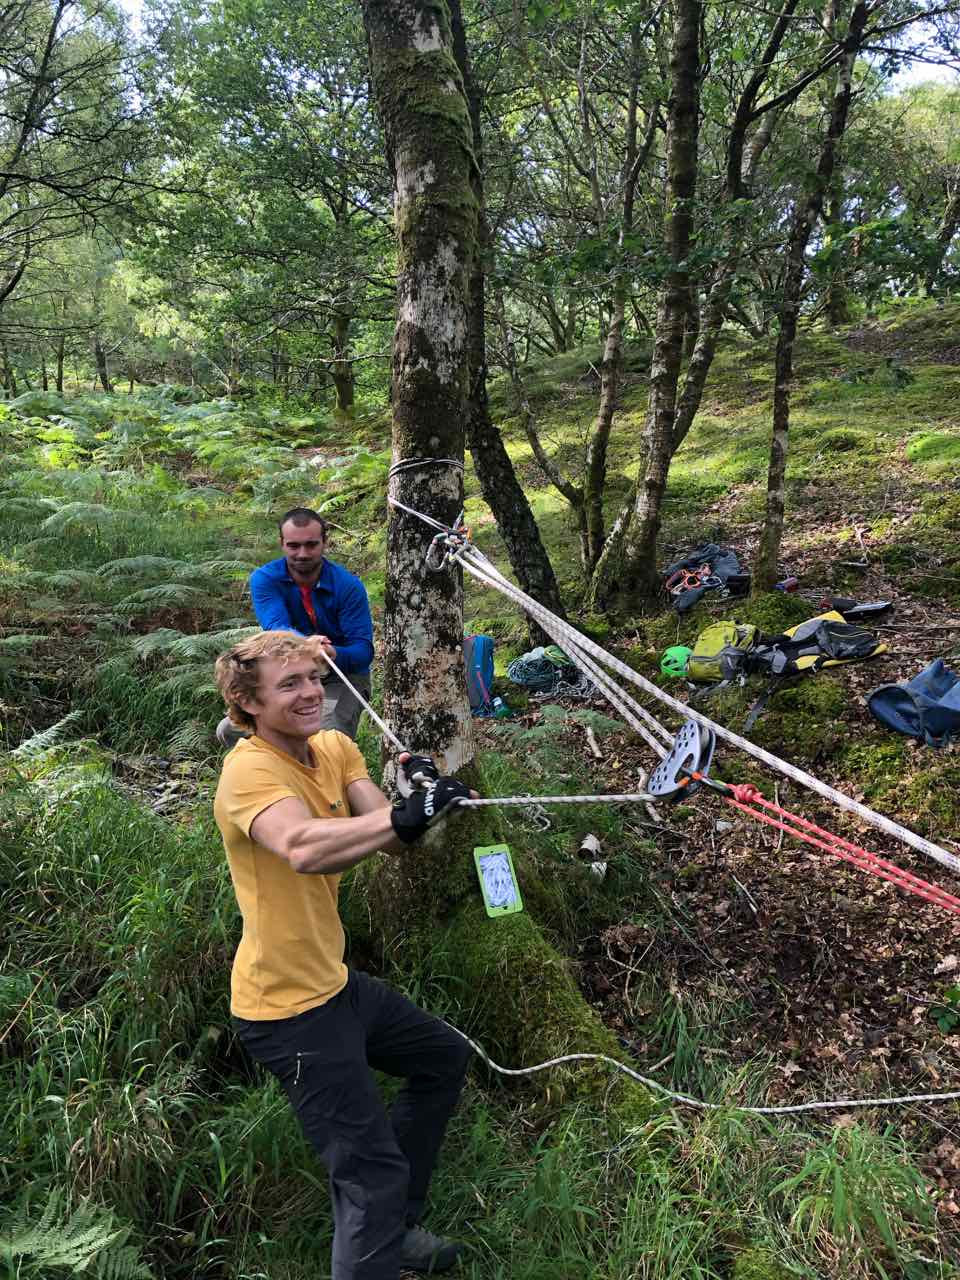 Few photos and data from the Tyrolean workshop (14th Sept 2019)